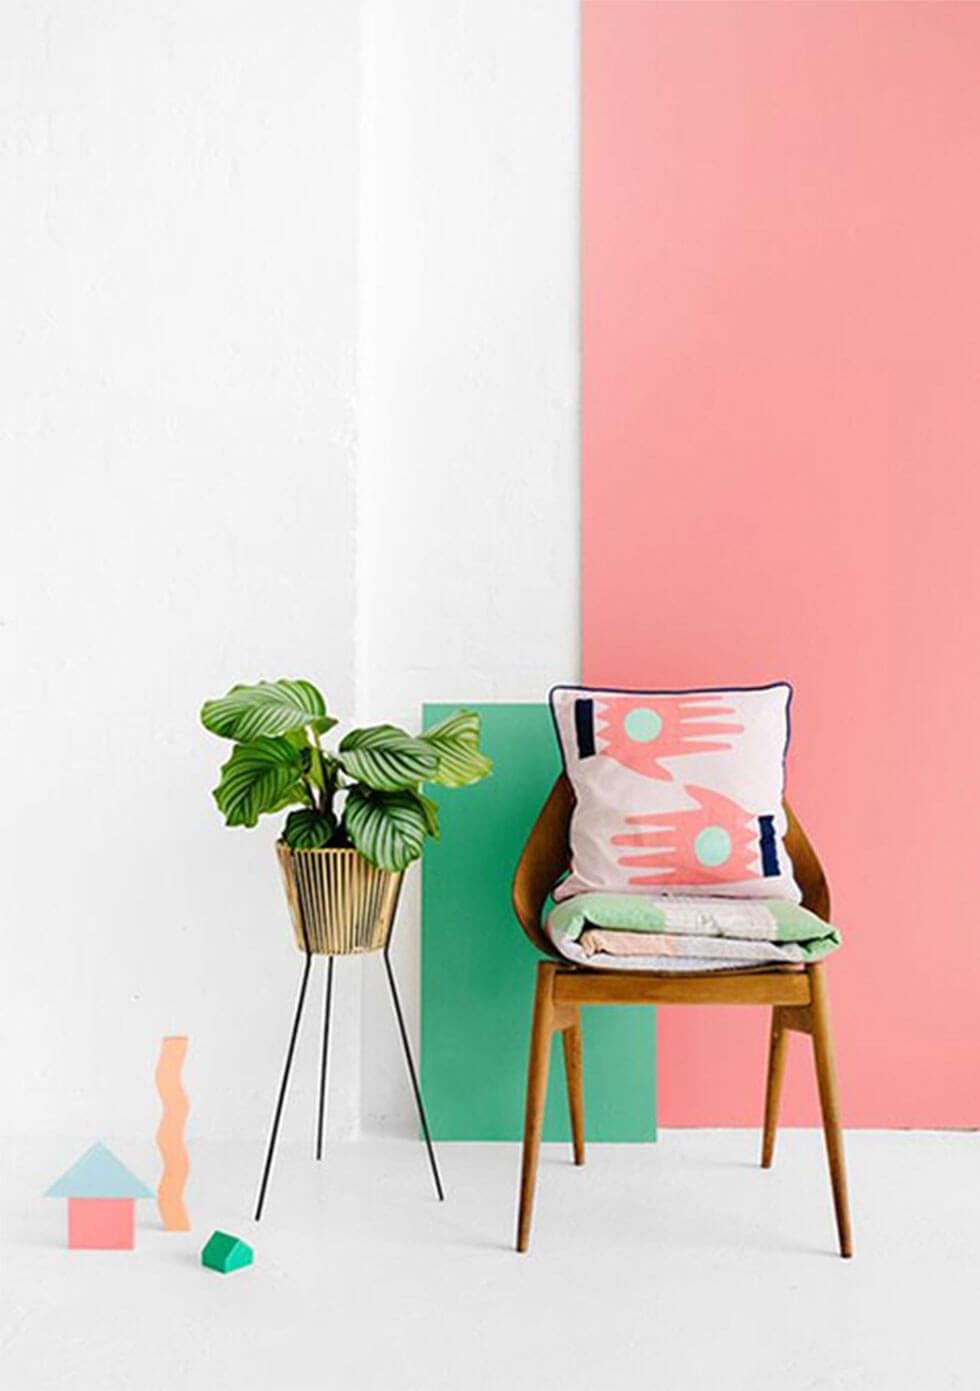 wooden chair against an energising neo-mint and coral pink wall.